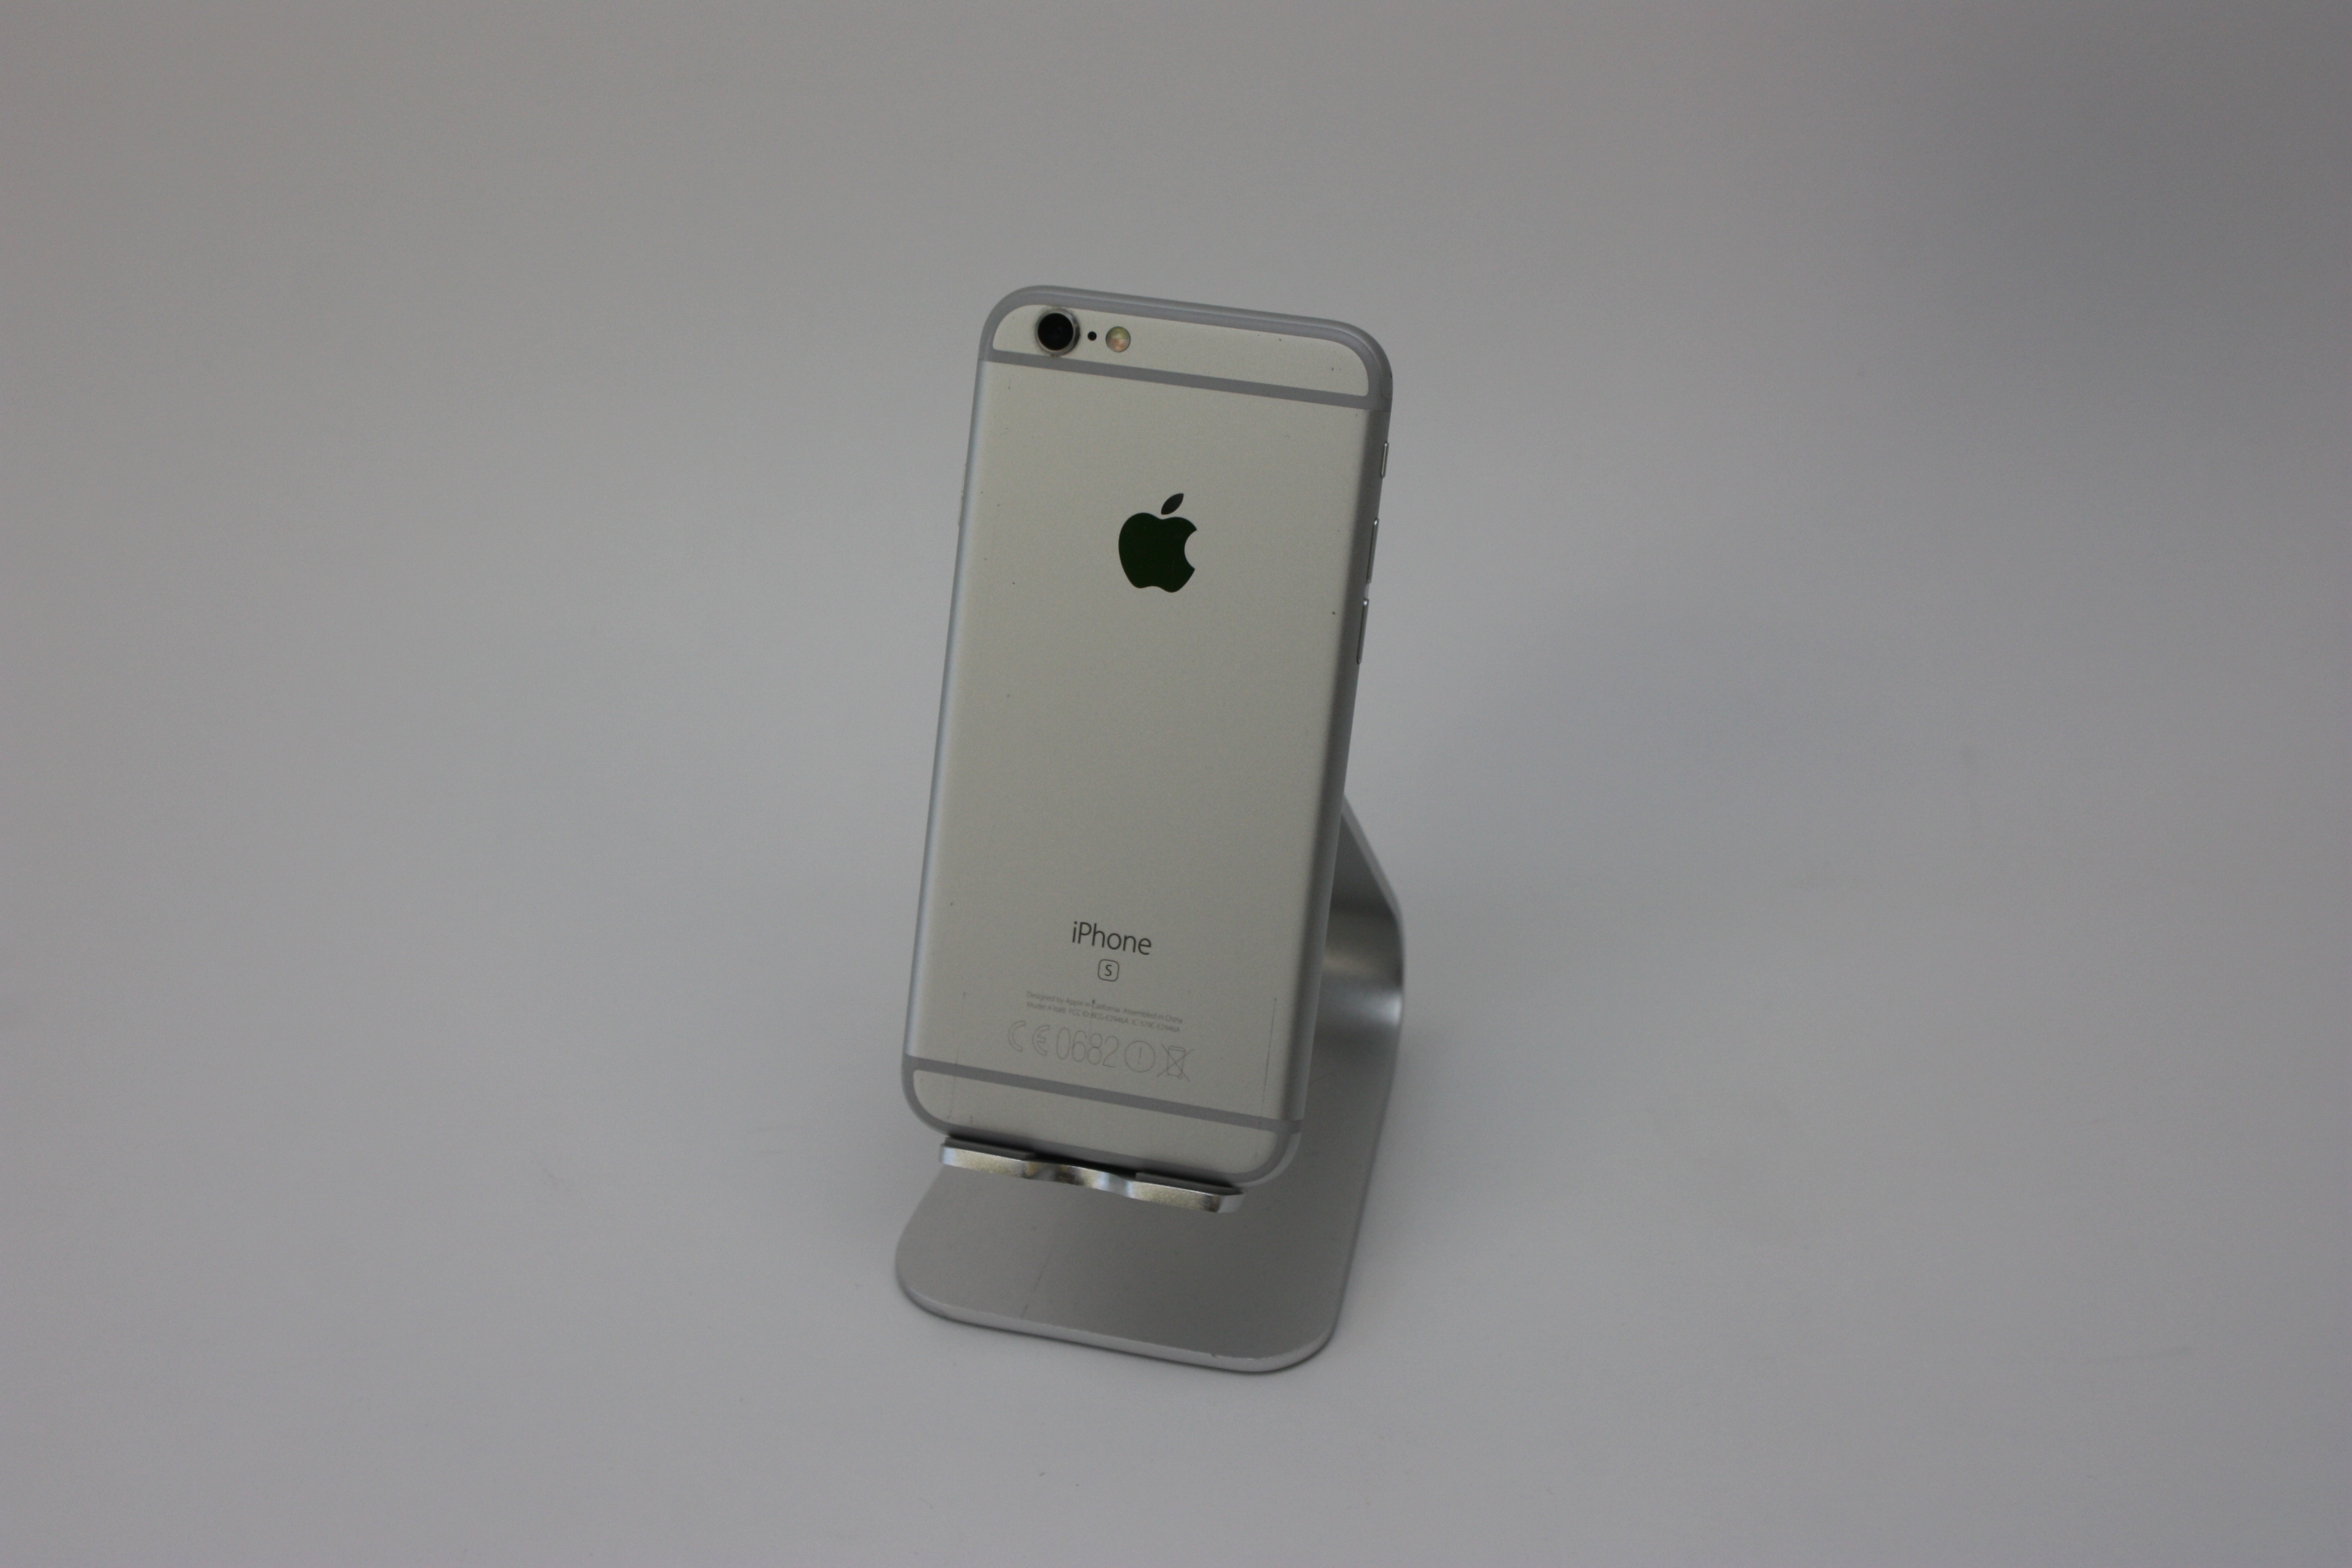 iPhone 6S, 16 GB, Silver, image 2